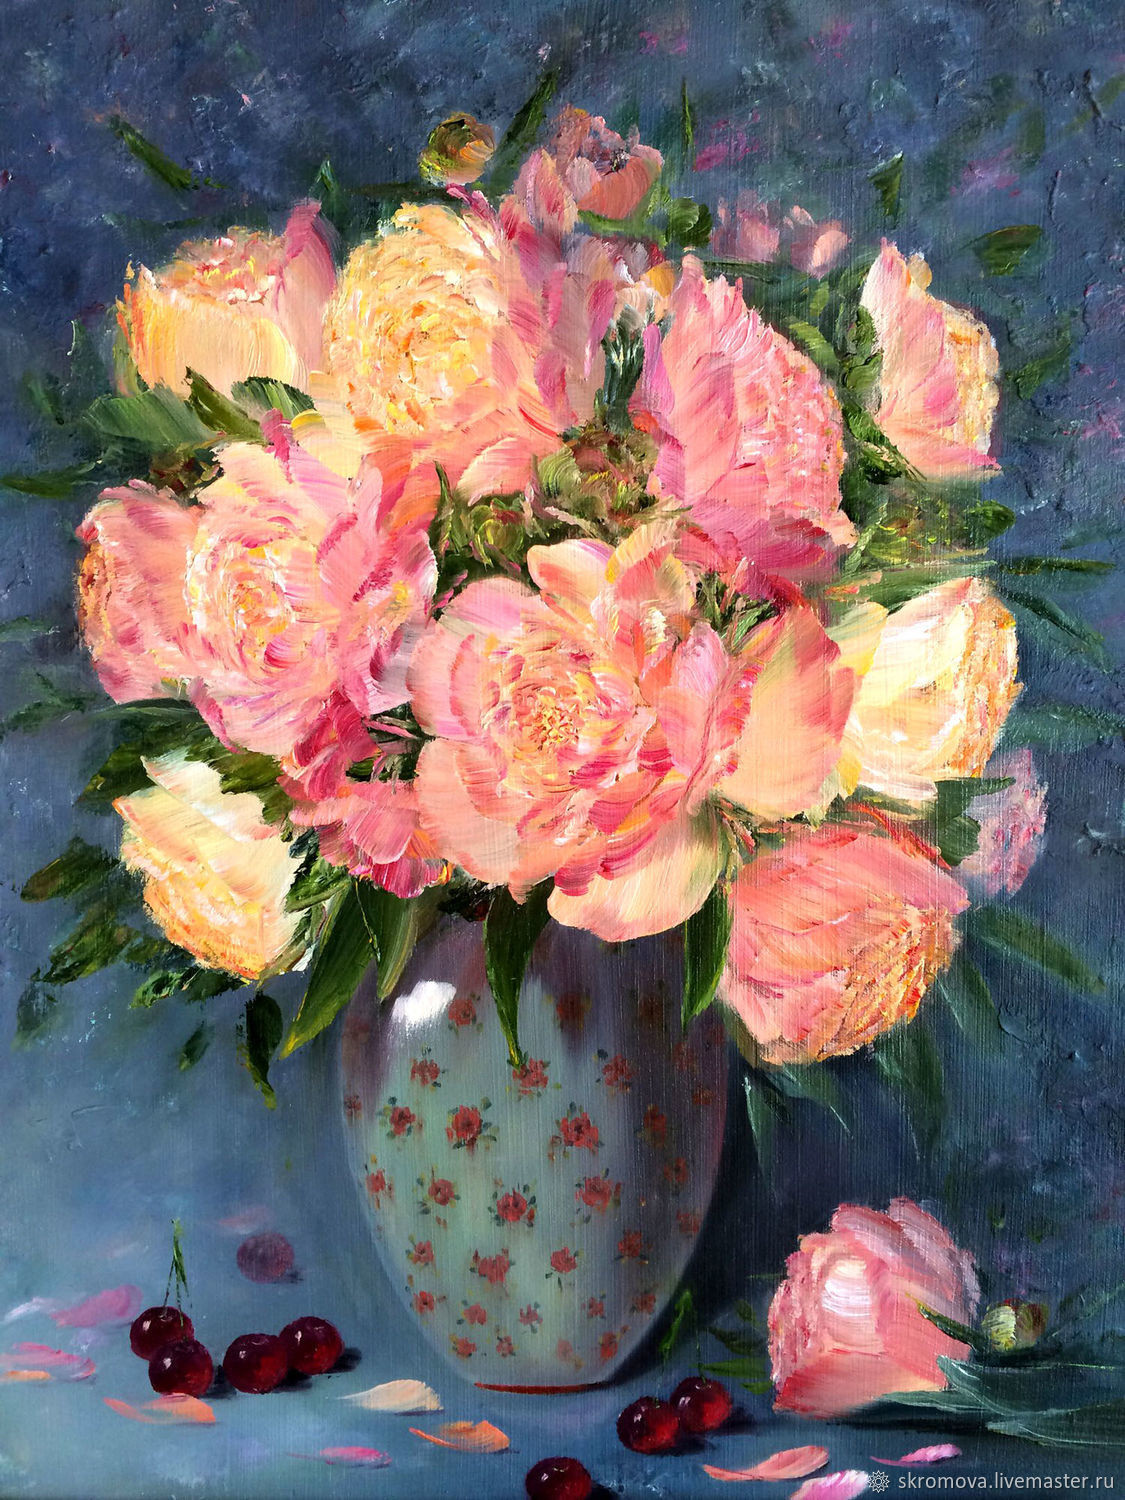 vase of peonies of oil painting peonies in a porcelain vase shop online on livemaster pertaining to oil painting peonies in a porcelain vase zabaikalie online shopping